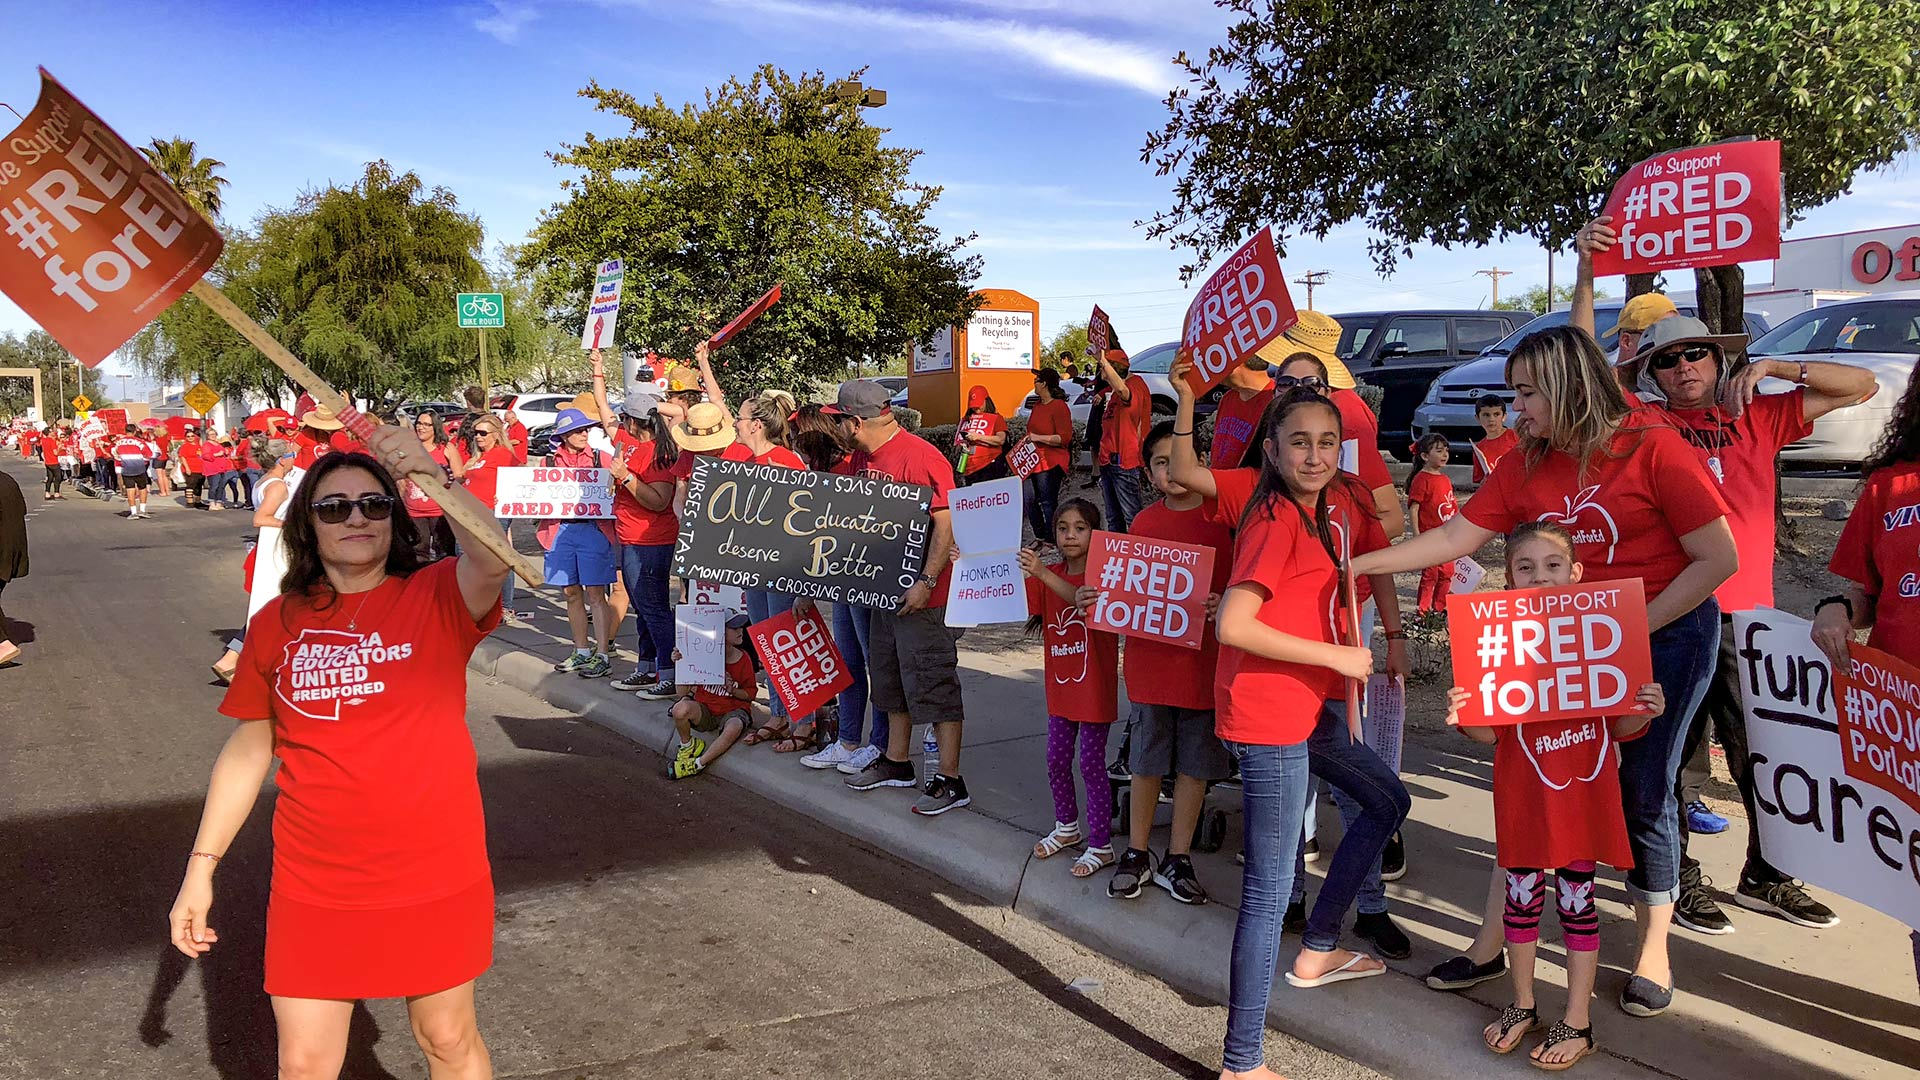 Demonstrators gather on Broadway in Tucson April 25, 2018 to protest for more state education funding, one day before a walkout that closed schools all over the state.